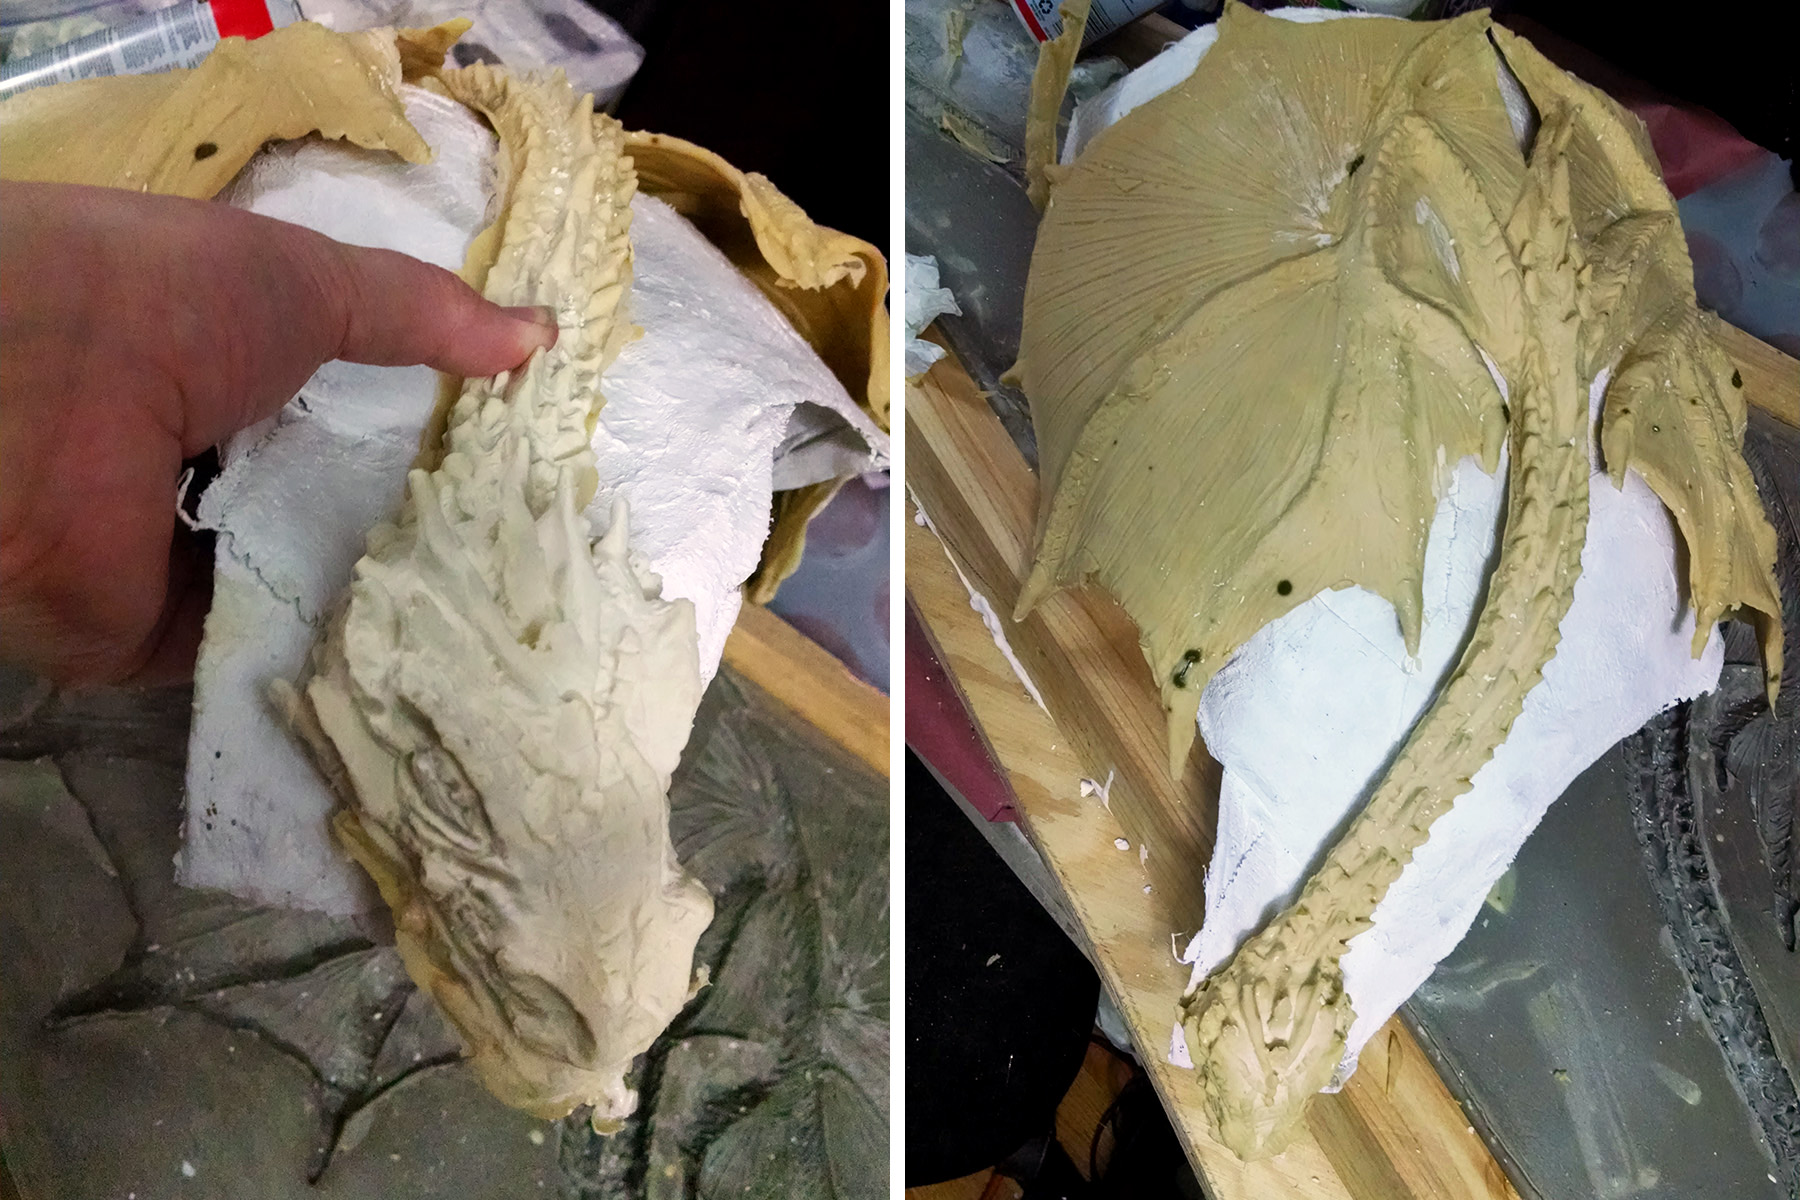 A two part image showing full and close up views of the very freshly unmolded dragon top being molded over a plaster torso form.